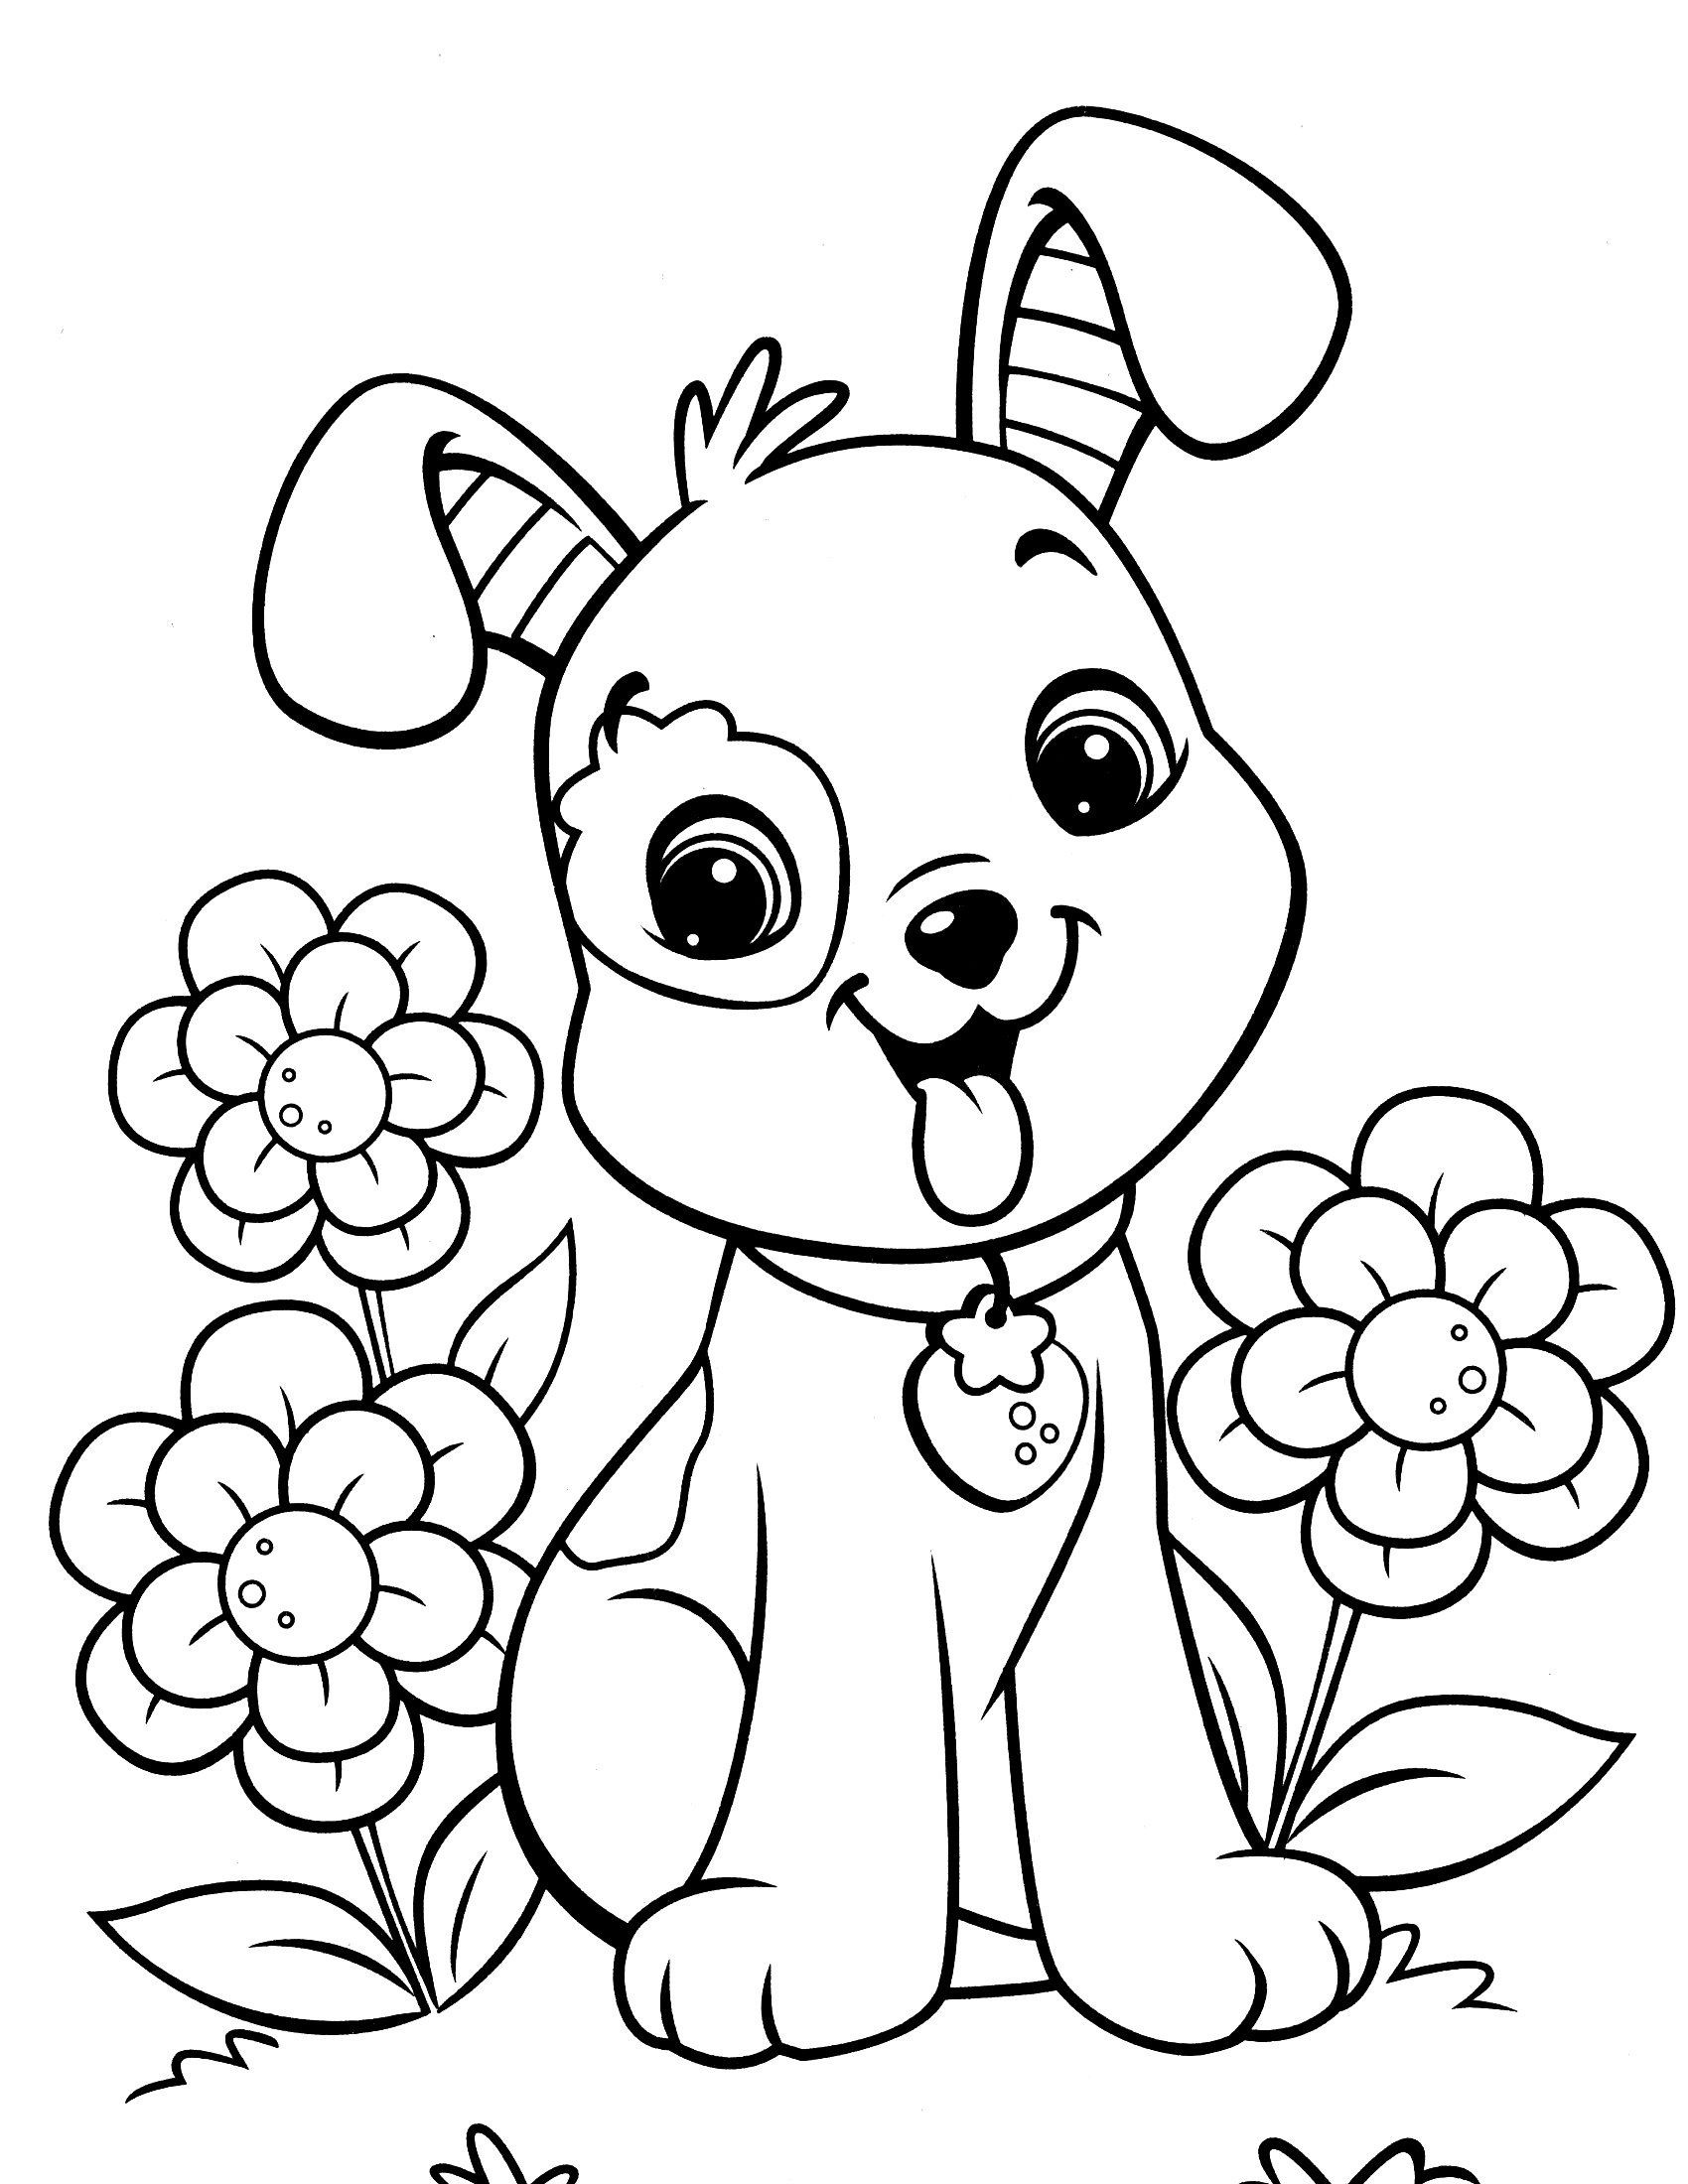 coloring pages of dogs printable dog coloring pages printable coloring pages of dogs for dogs pages coloring of printable